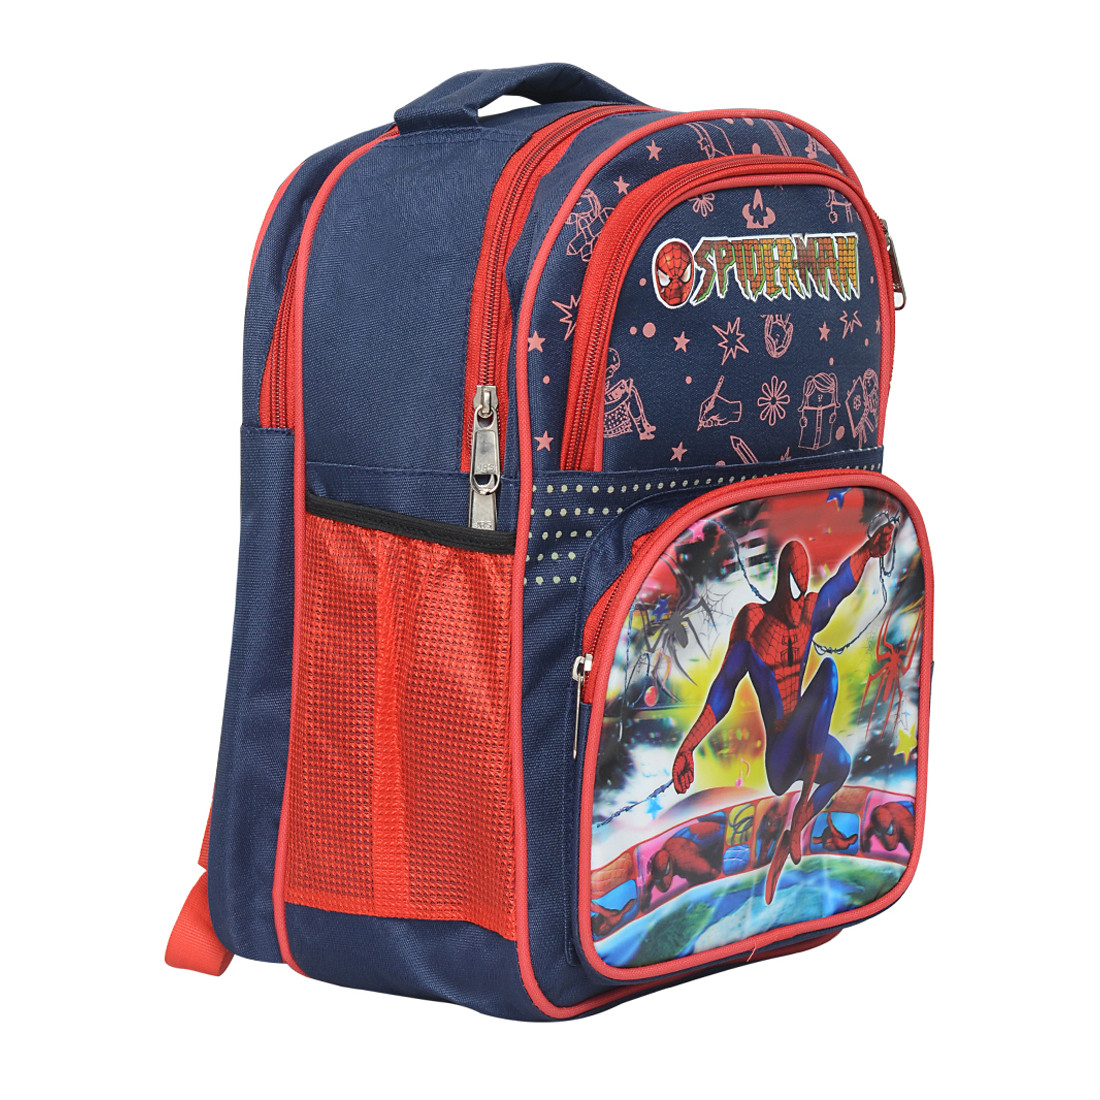 SDC Spider Man Polyester School Bag + Milton Water Bottle + Pencil ... ec558a6fe51e6